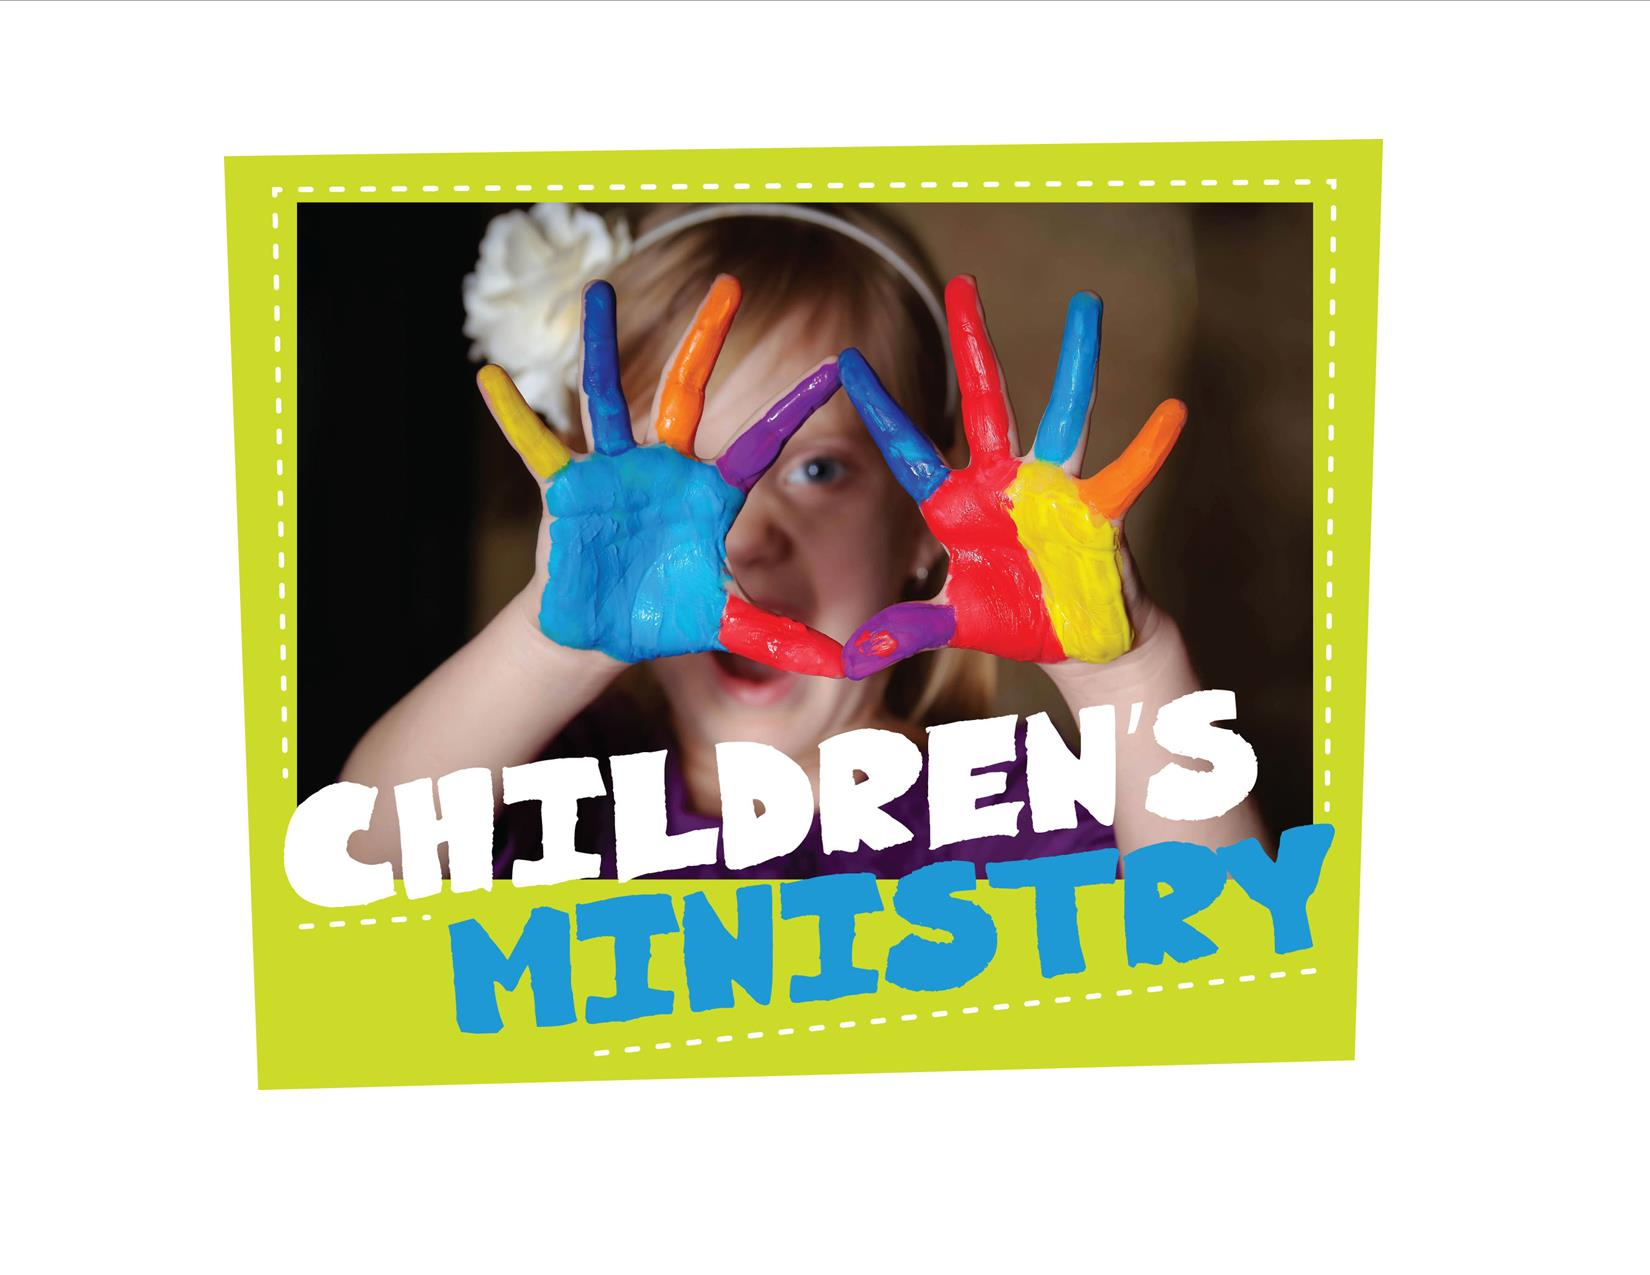 Children s ministry logo